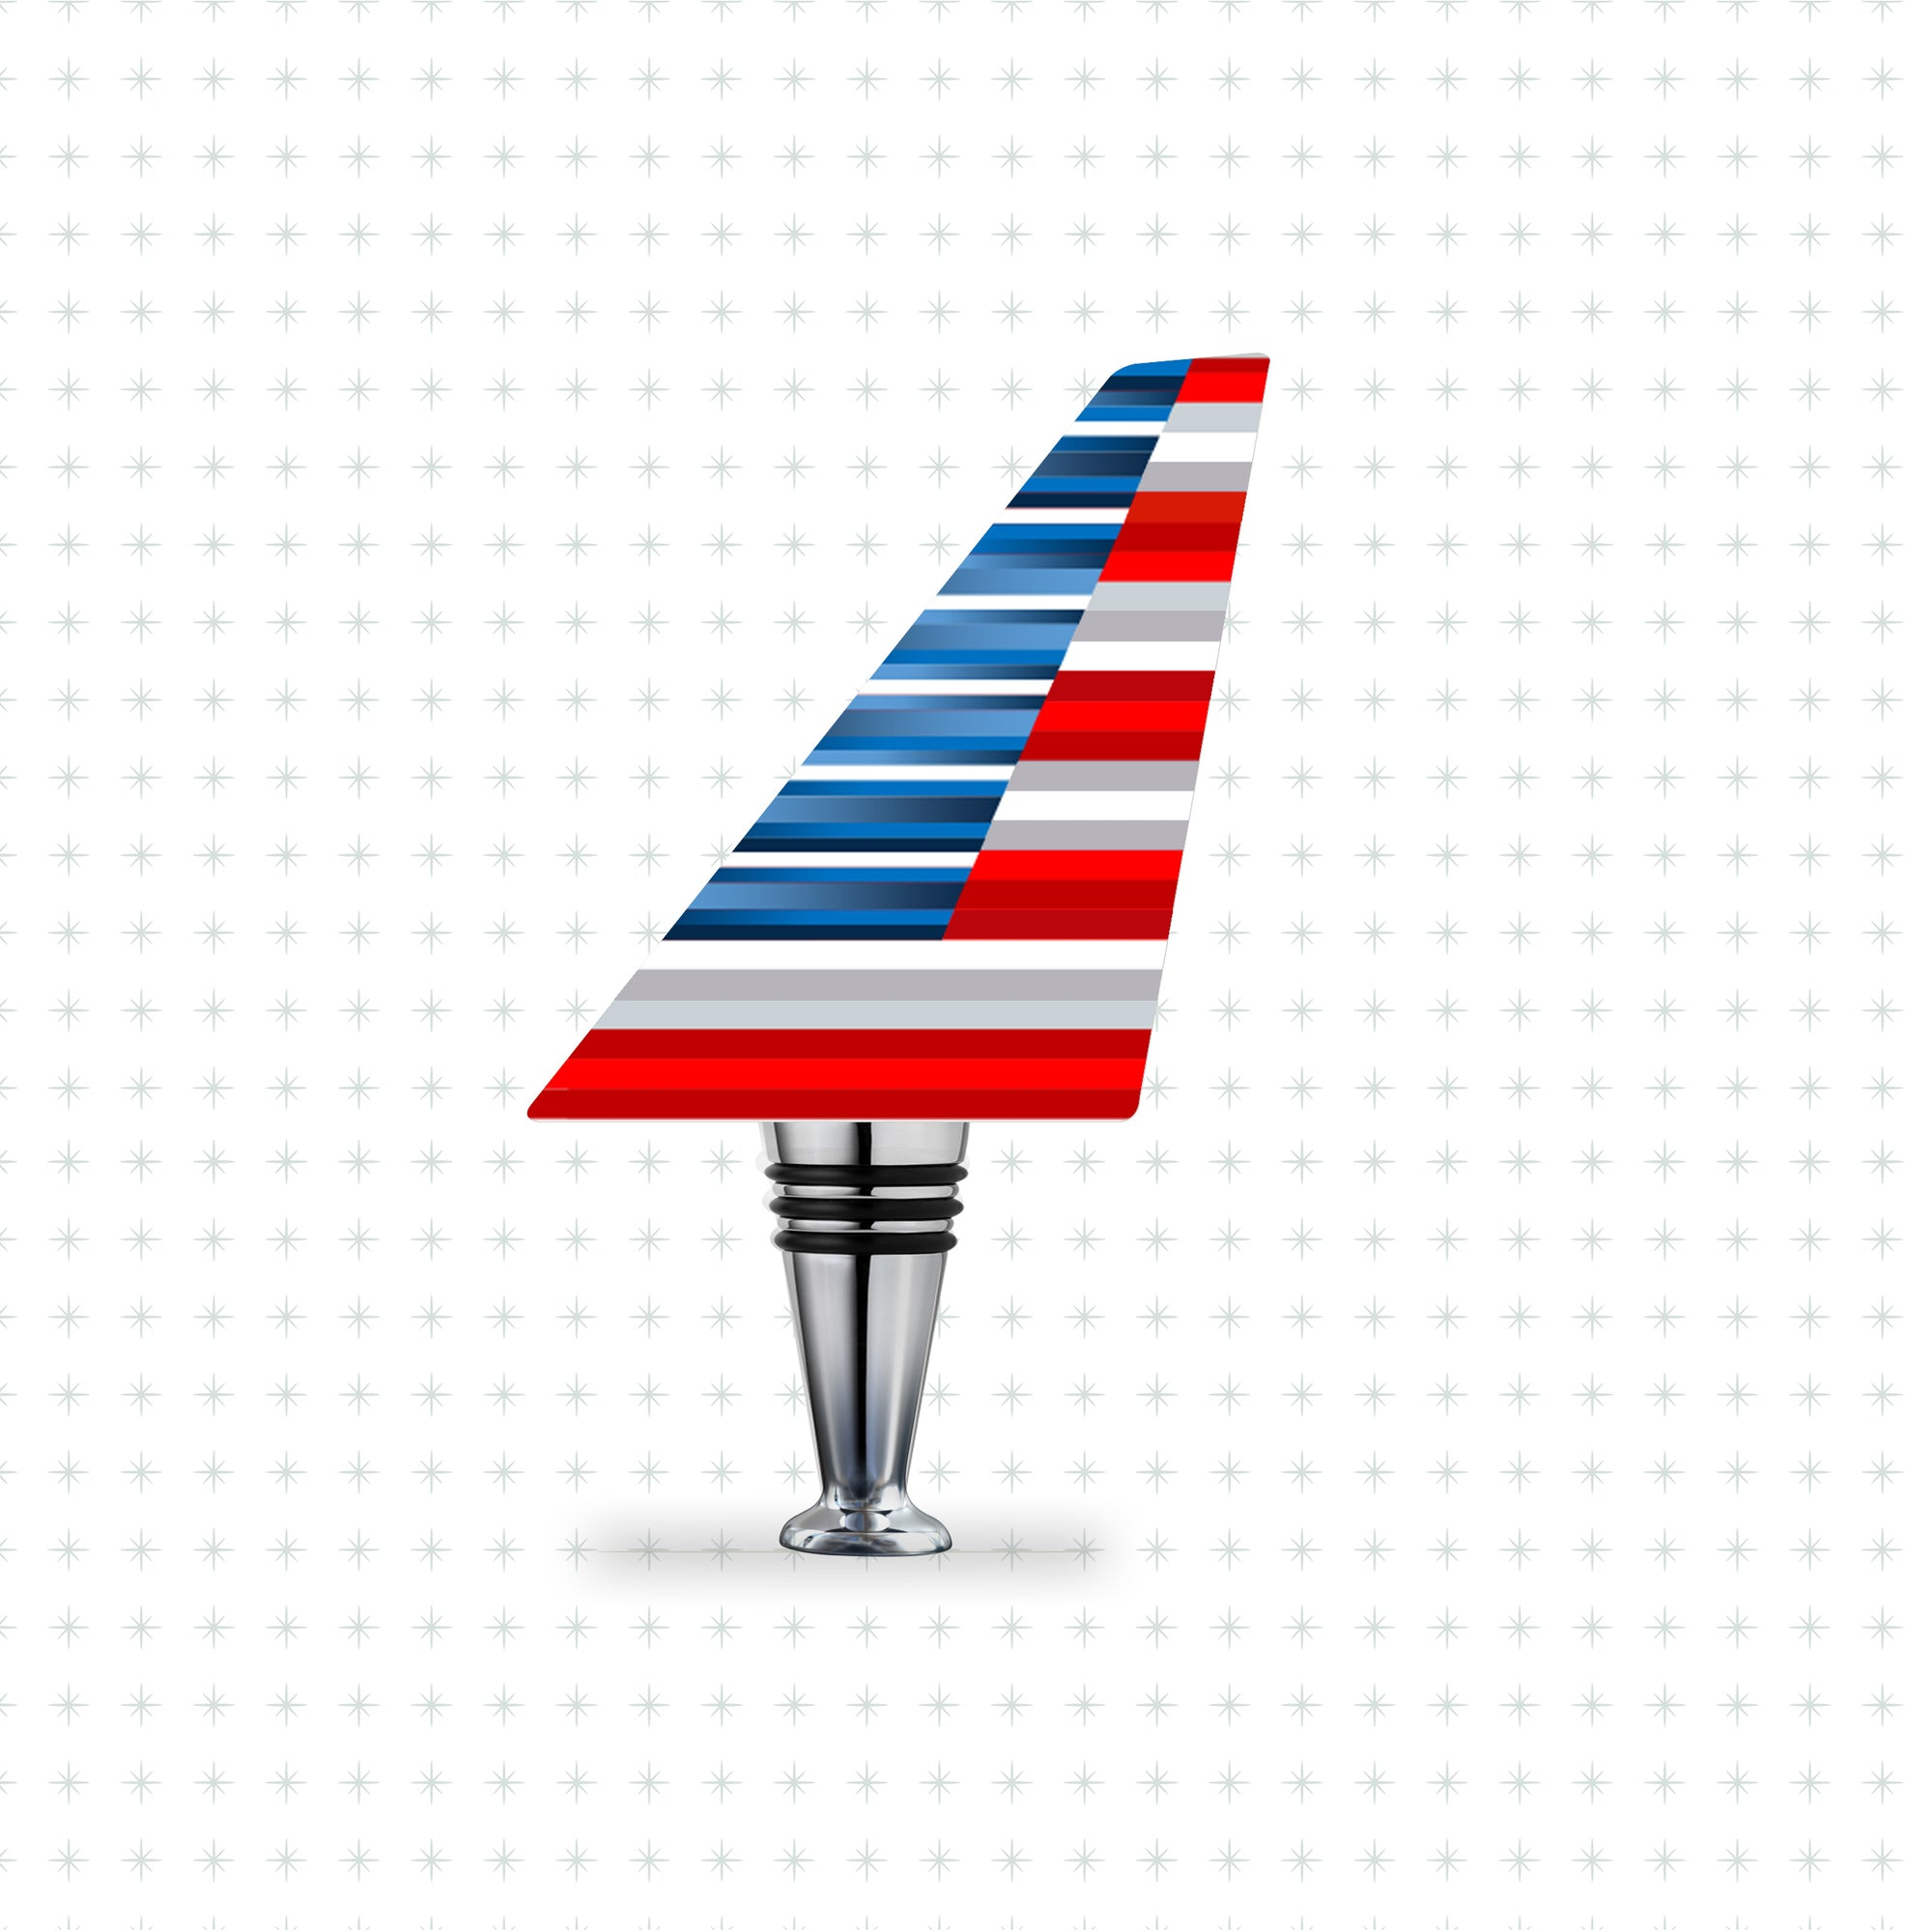 American Airlines (New Livery) Airline Tails™️ Bottle Stopper